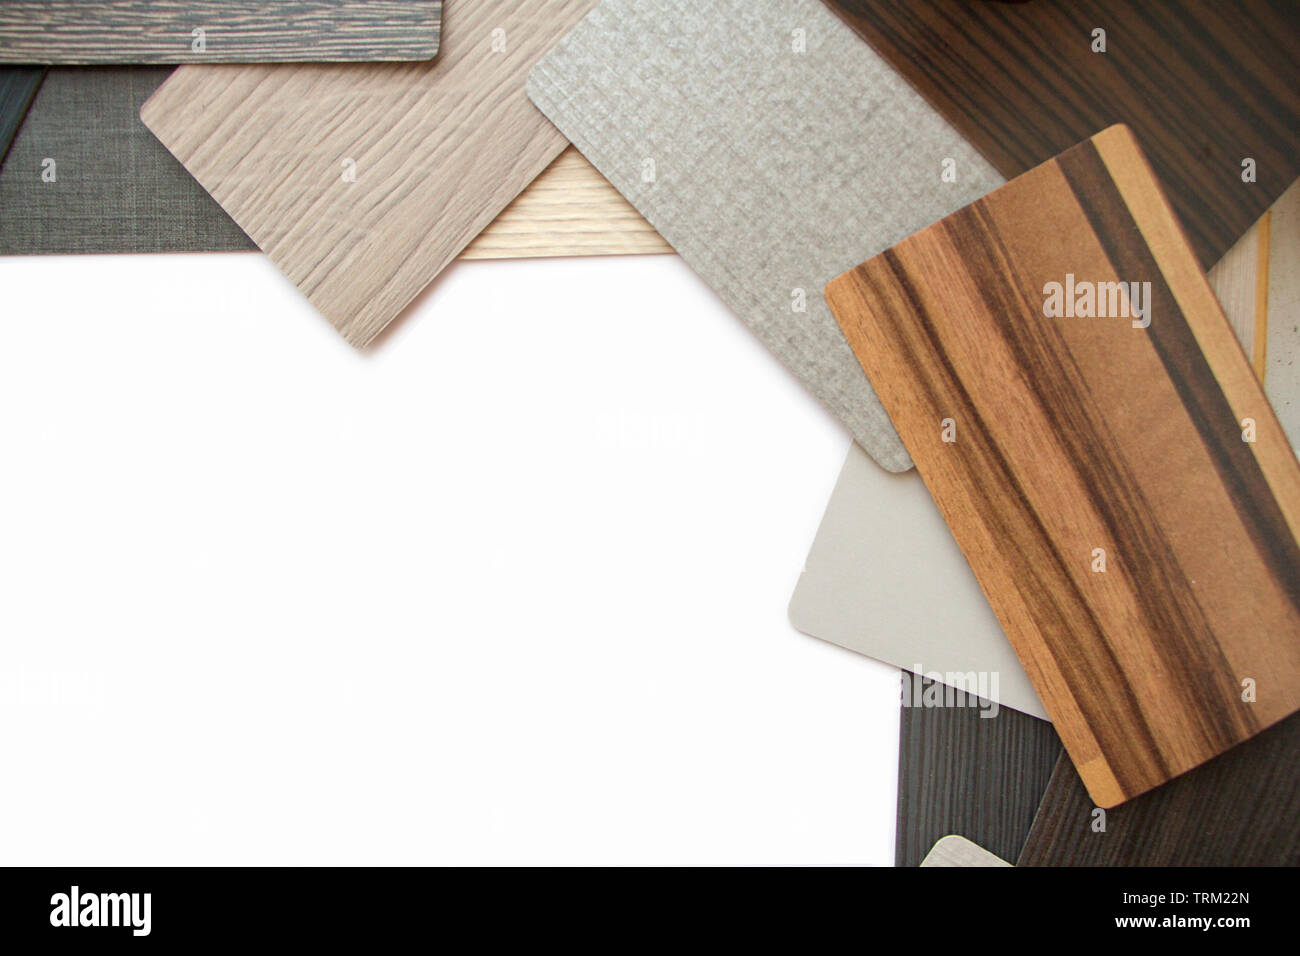 Background or concept of multi-colored cards in gray and brown tones and different textures isolate on a white background, copy space - Stock Image